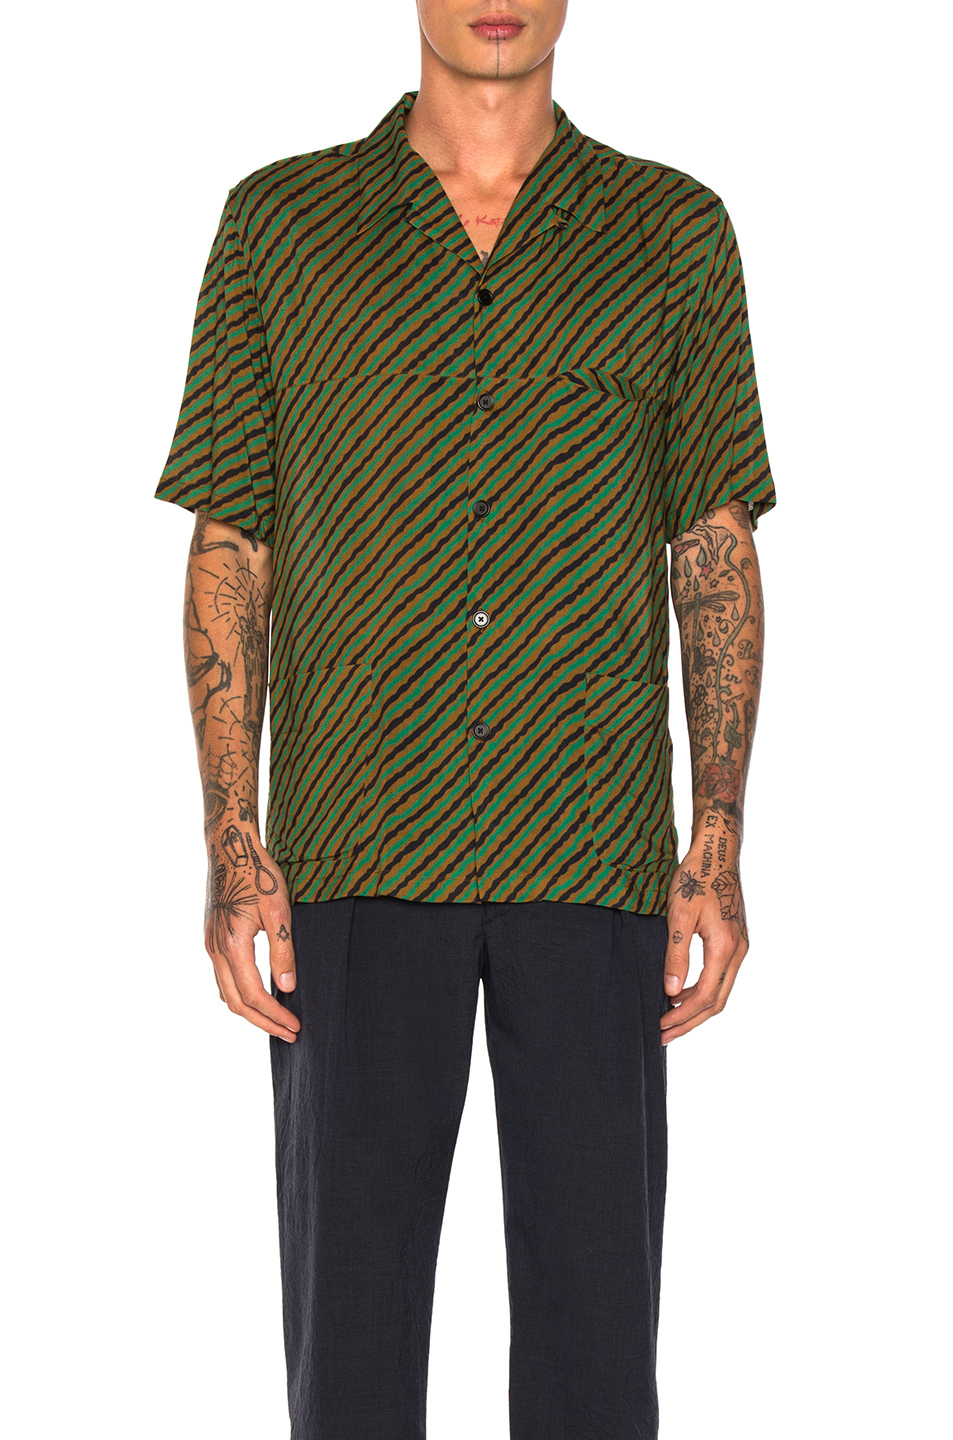 Lemaire Three Pocket Shirt in Stripes,Green